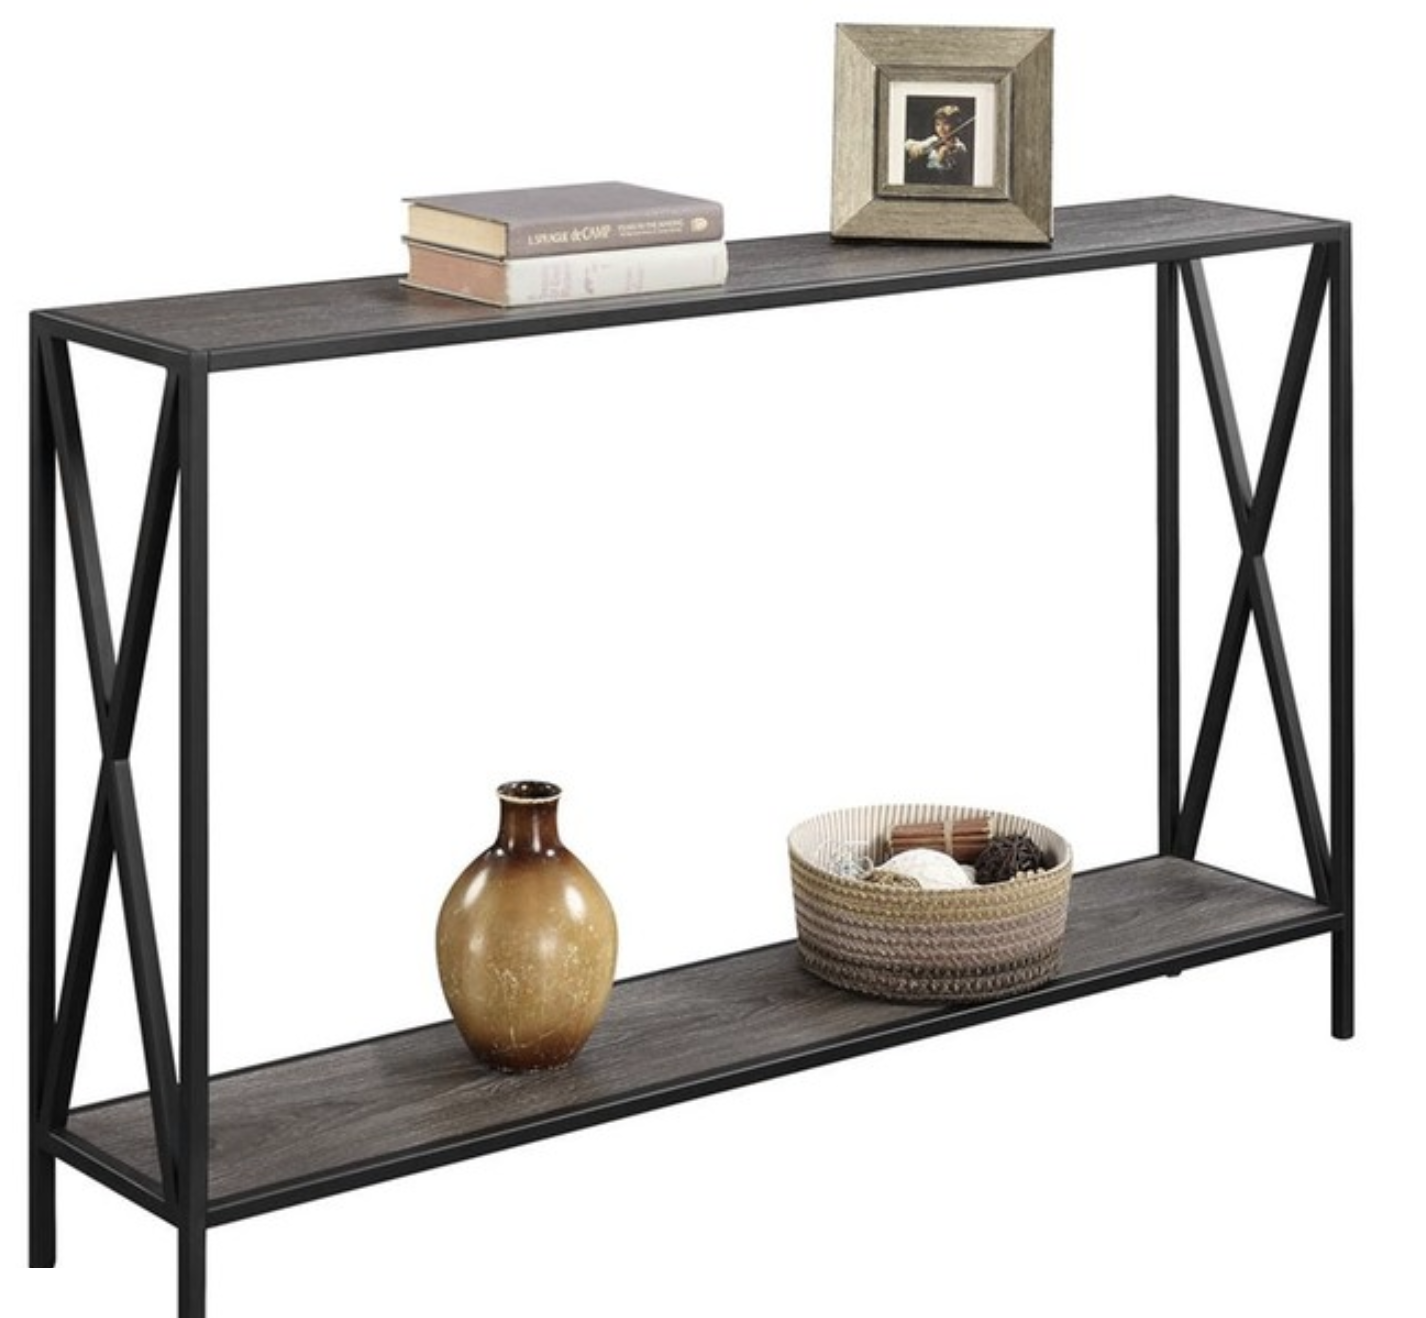 console-table-in-weathered-gray-industrial